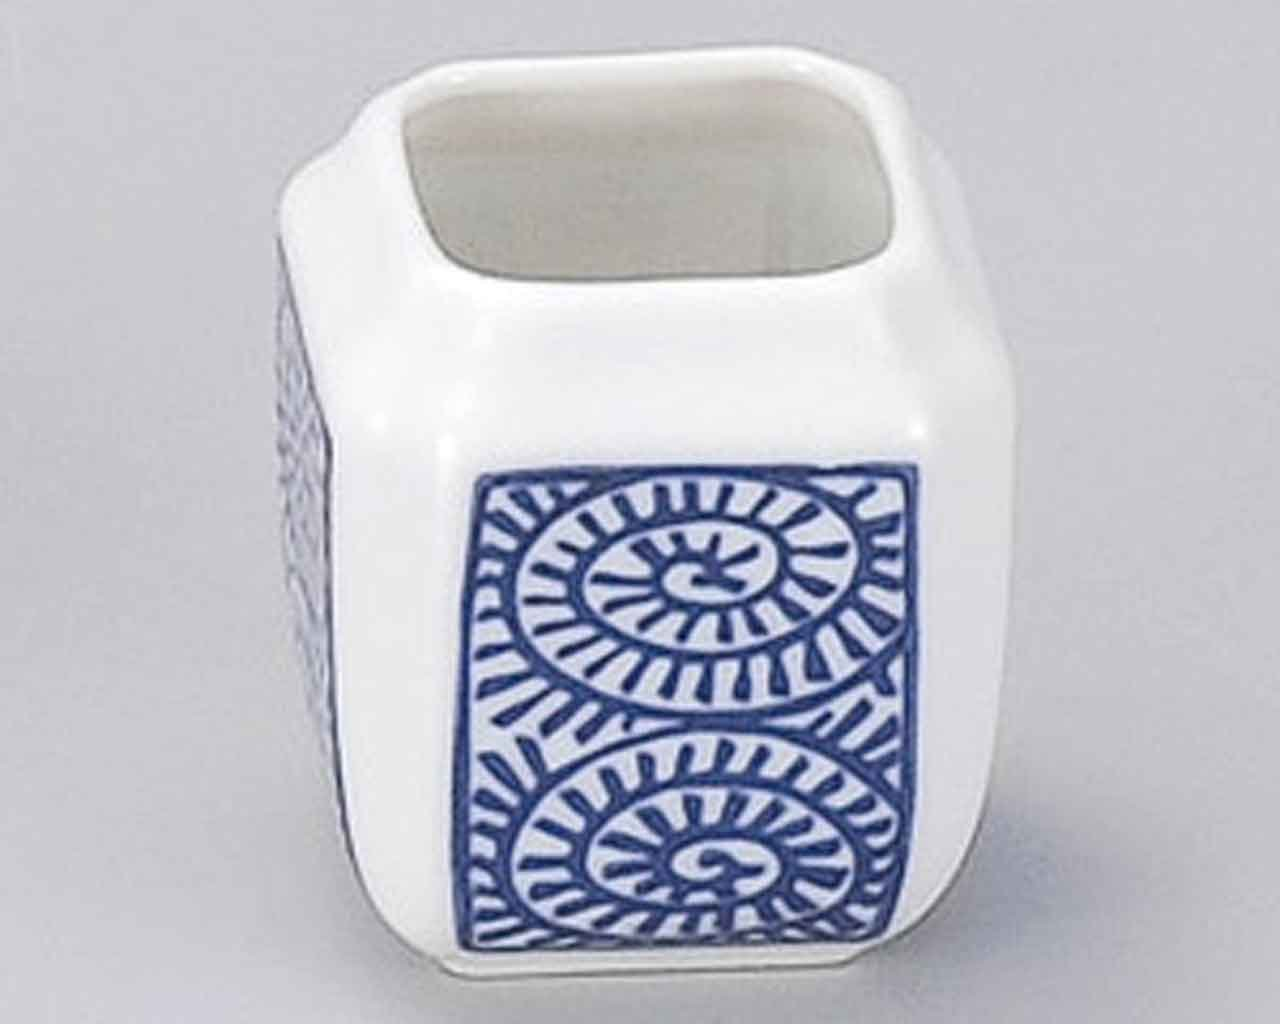 Tako Karakusa 1.9inch Set of 5 Toothpick holders White porcelain Made in Japan